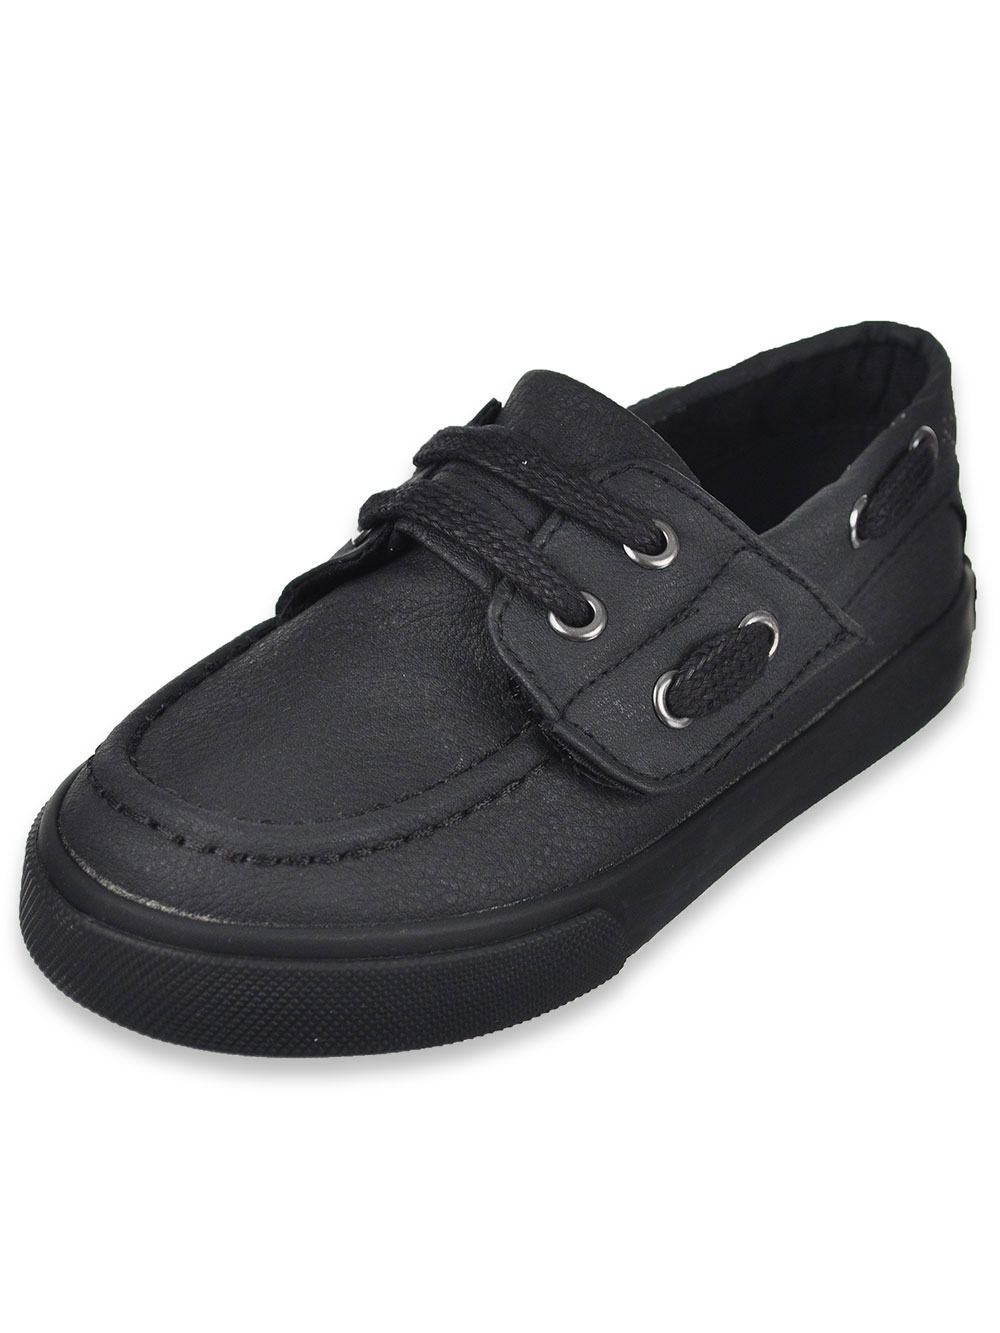 Boys' Boat Shoes by French Toast in